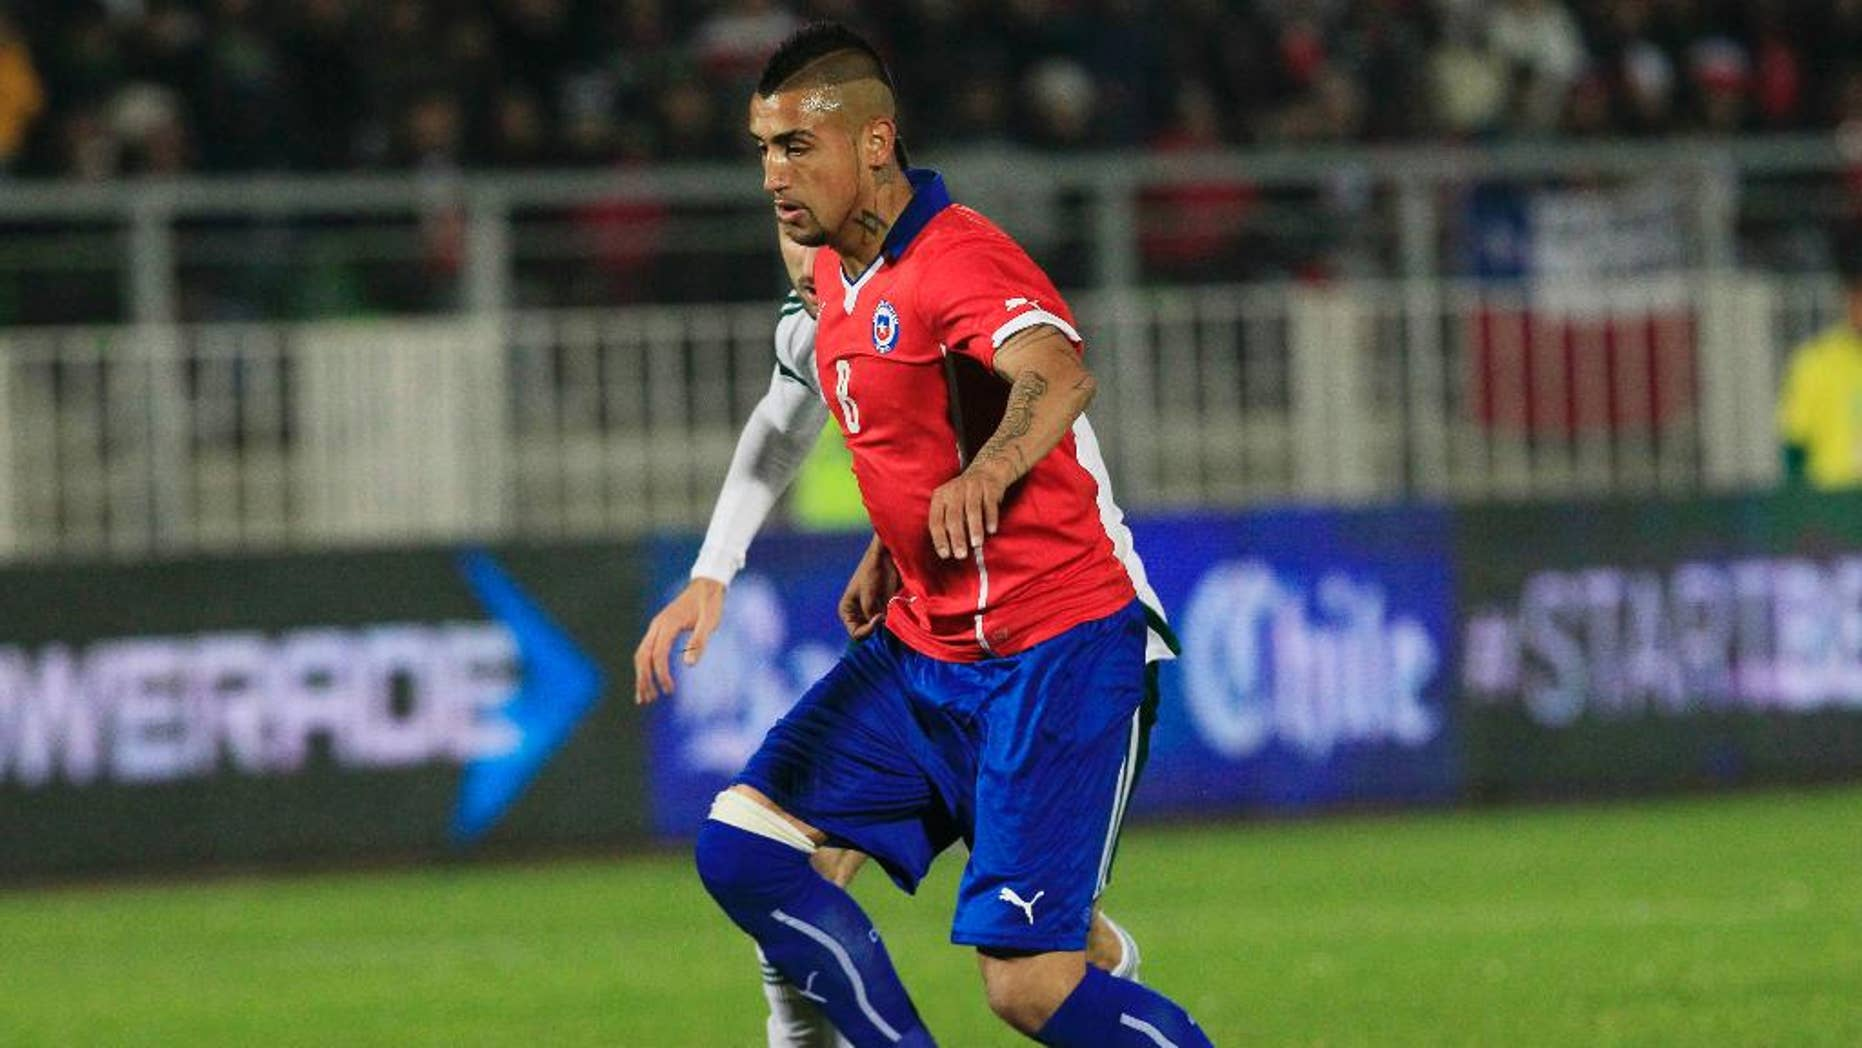 Chile's Jose Rojas, battles for the ball during an international friendly soccer match against Northern Ireland, in Valparaiso, Chile, Wednesday, June 4, 2014. (AP Photo/Luis Hidalgo)